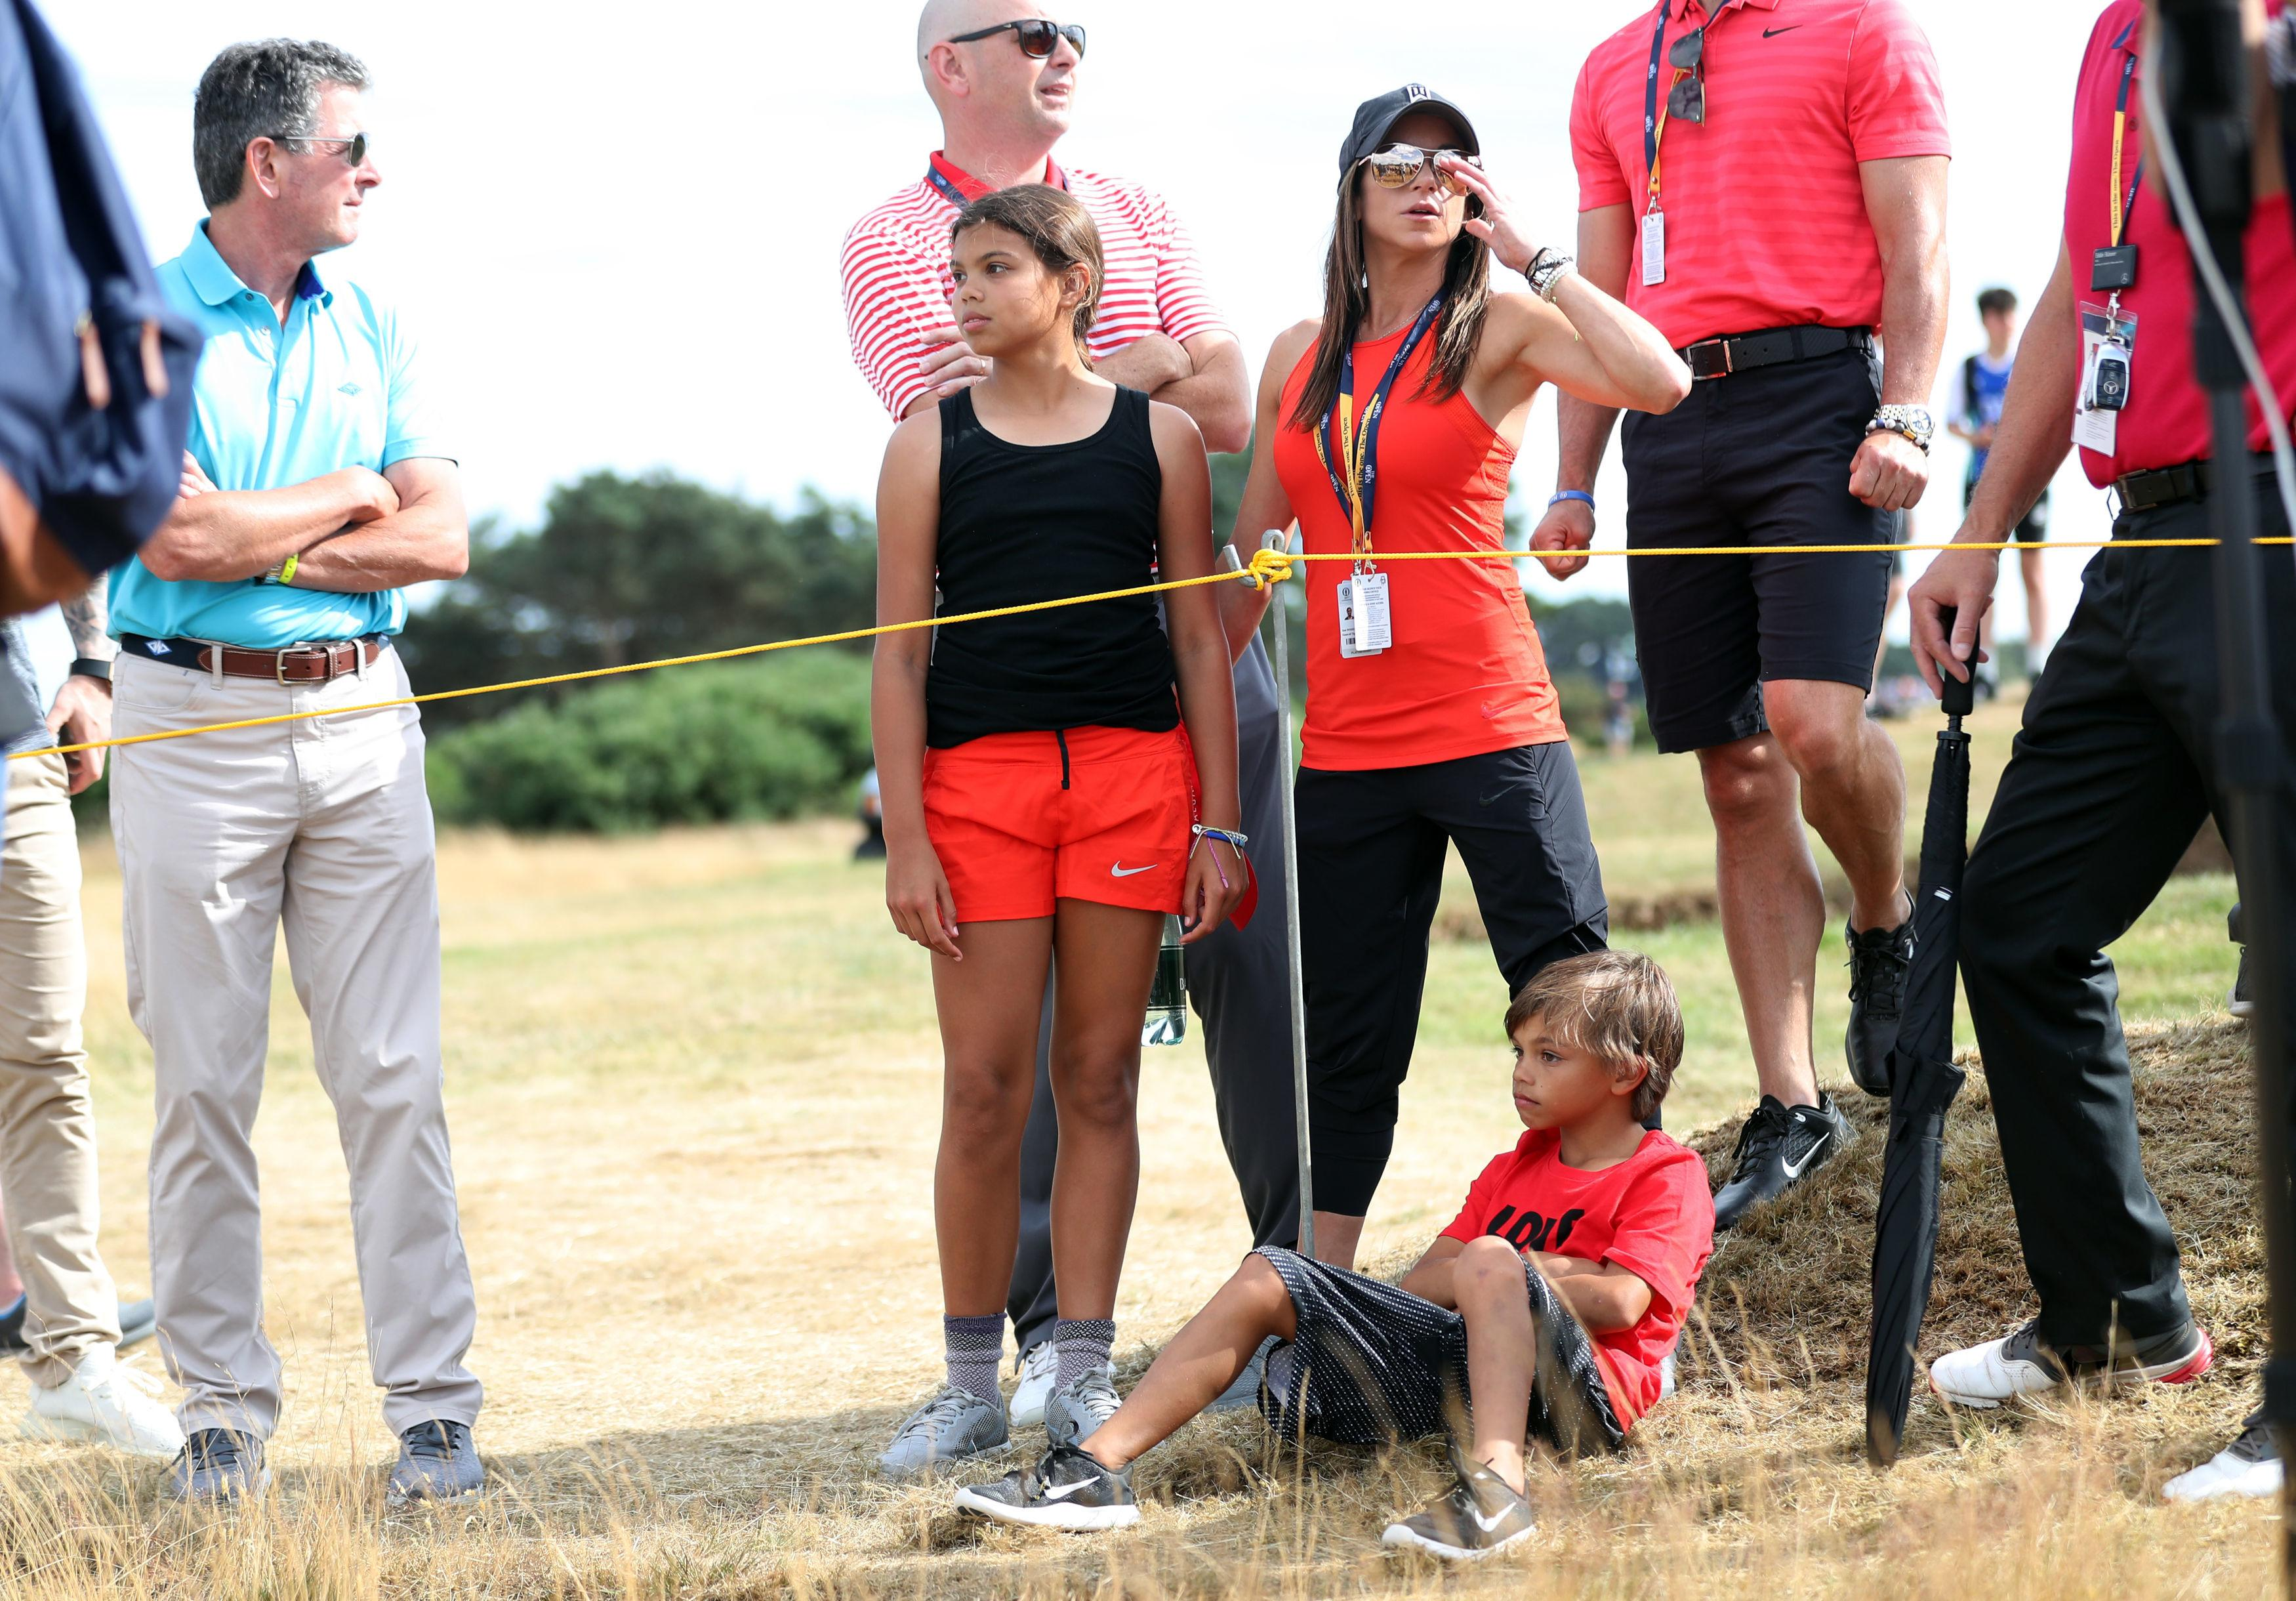 Tiger's loved ones cheer him on at Carnoustie